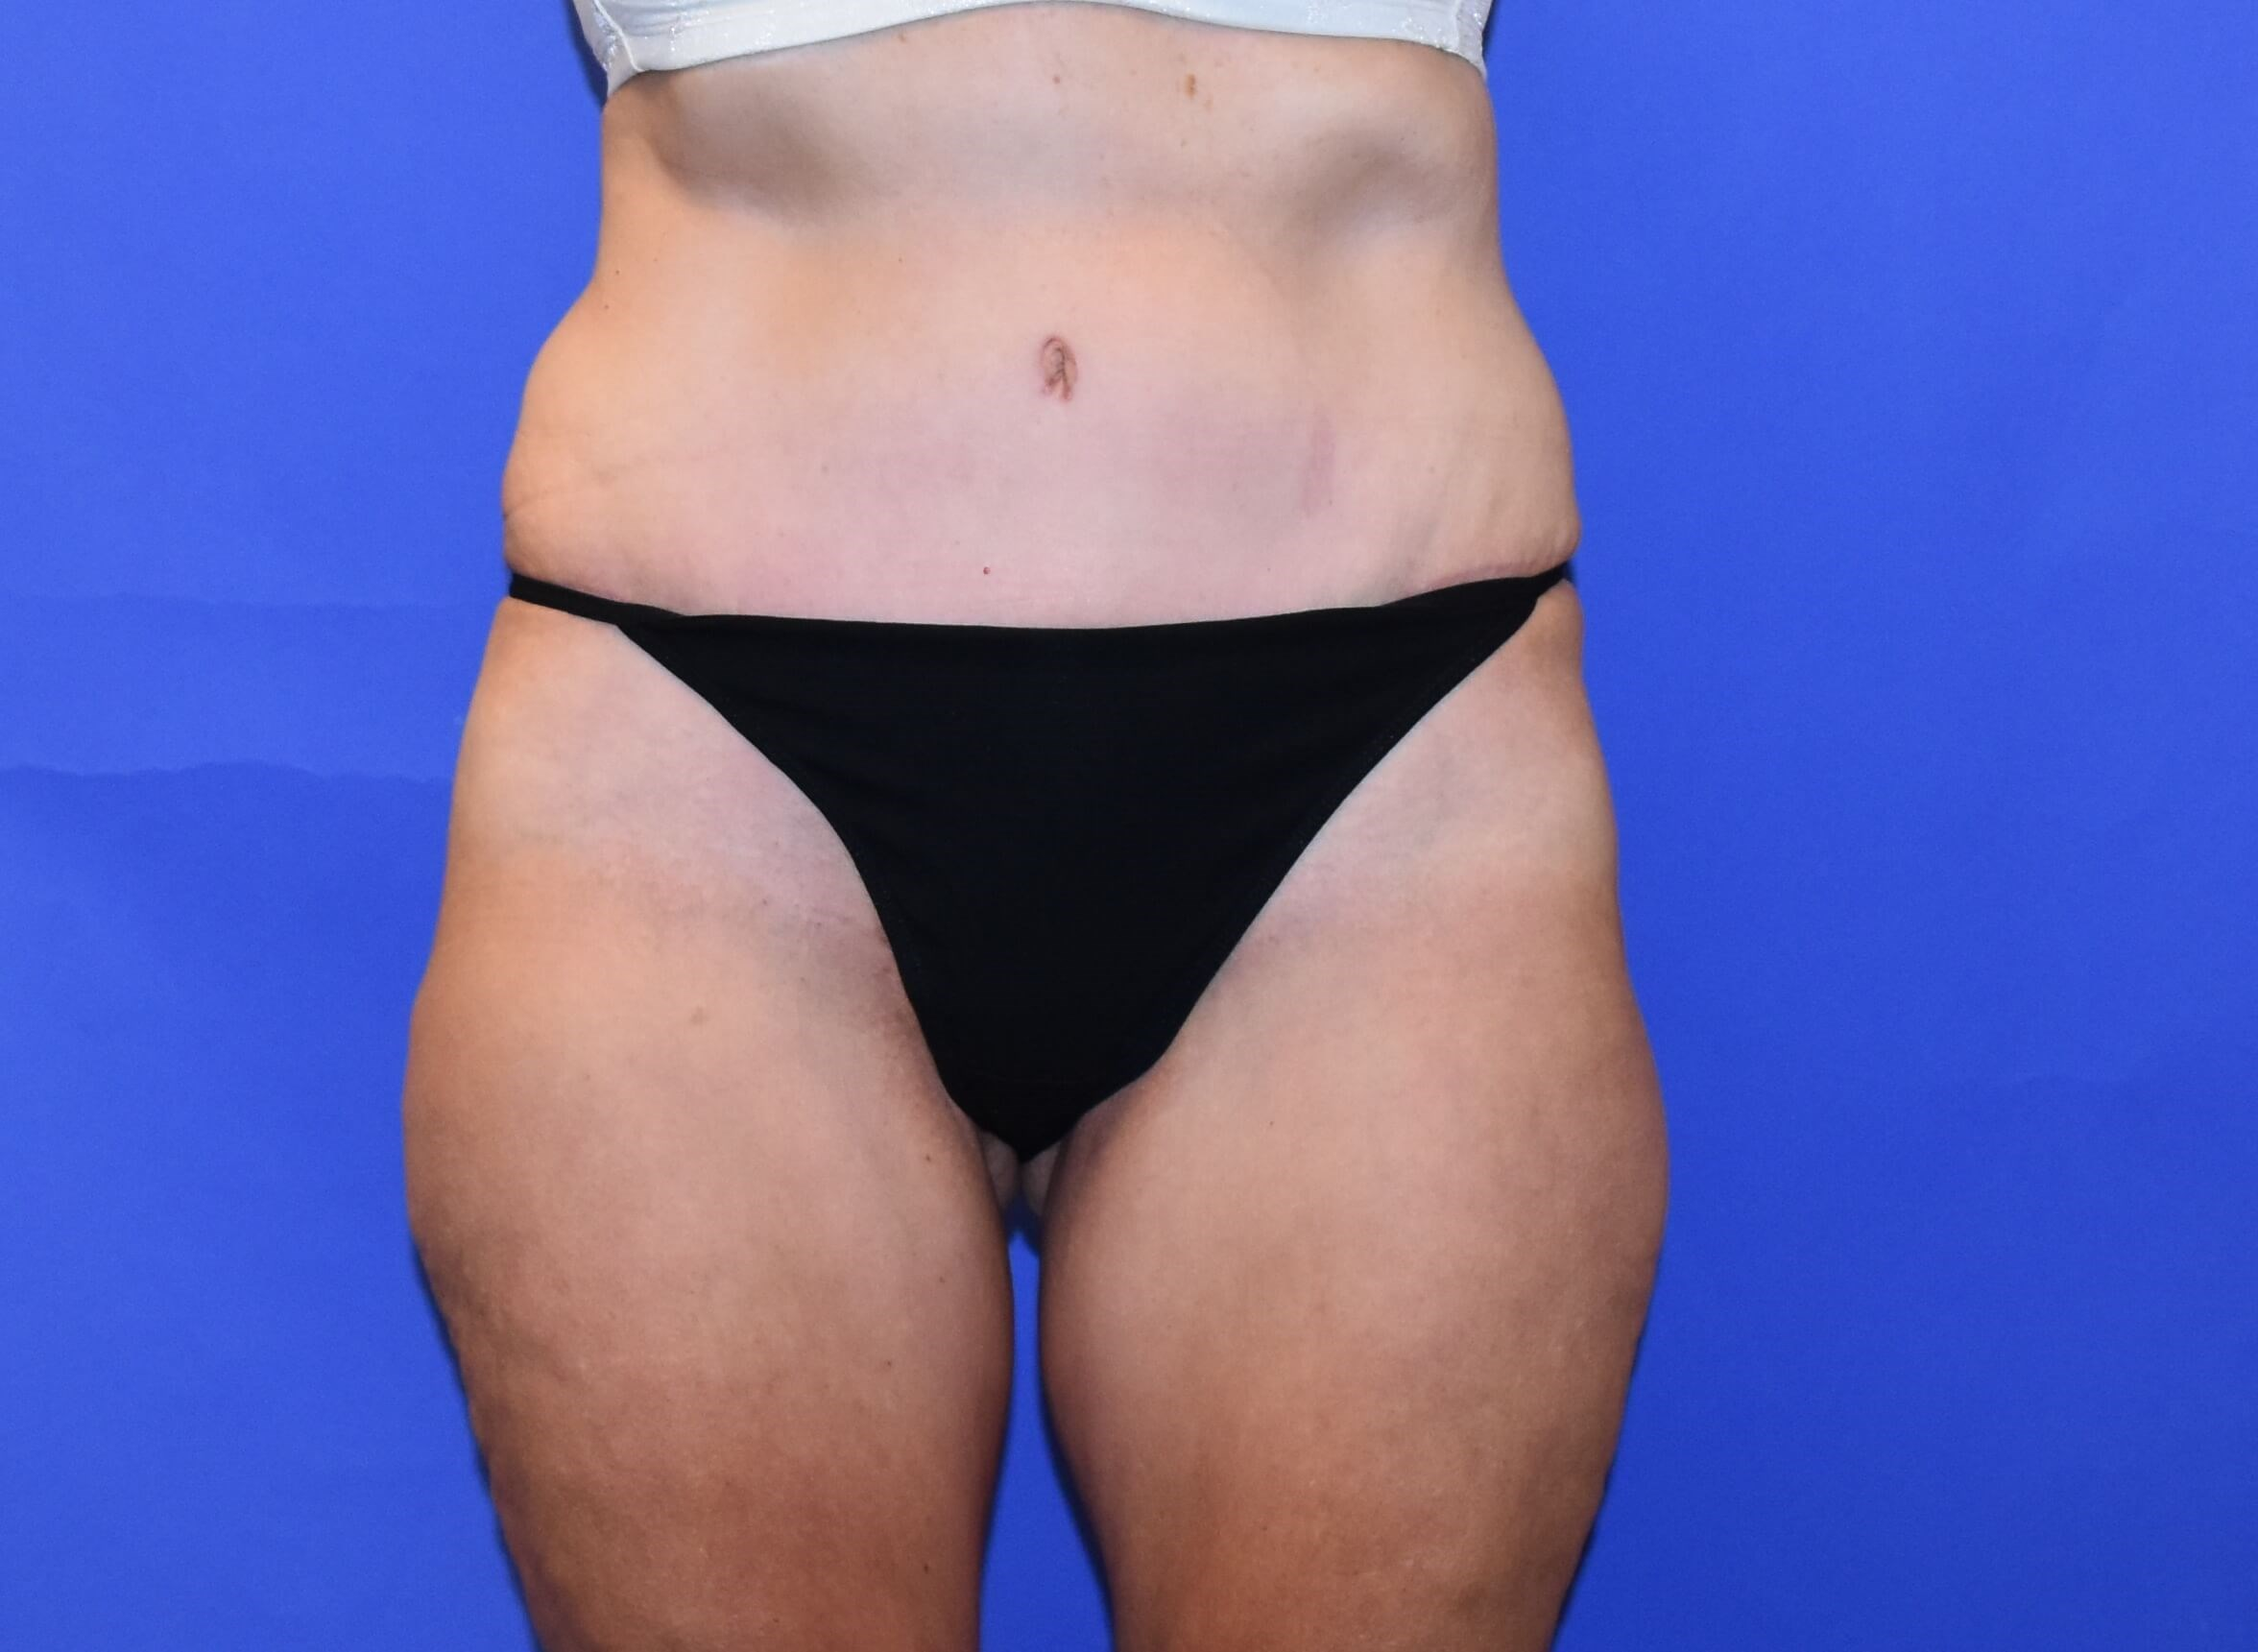 Tummy Tuck Post Weight Loss Surgery Performed On Houston Texas Female